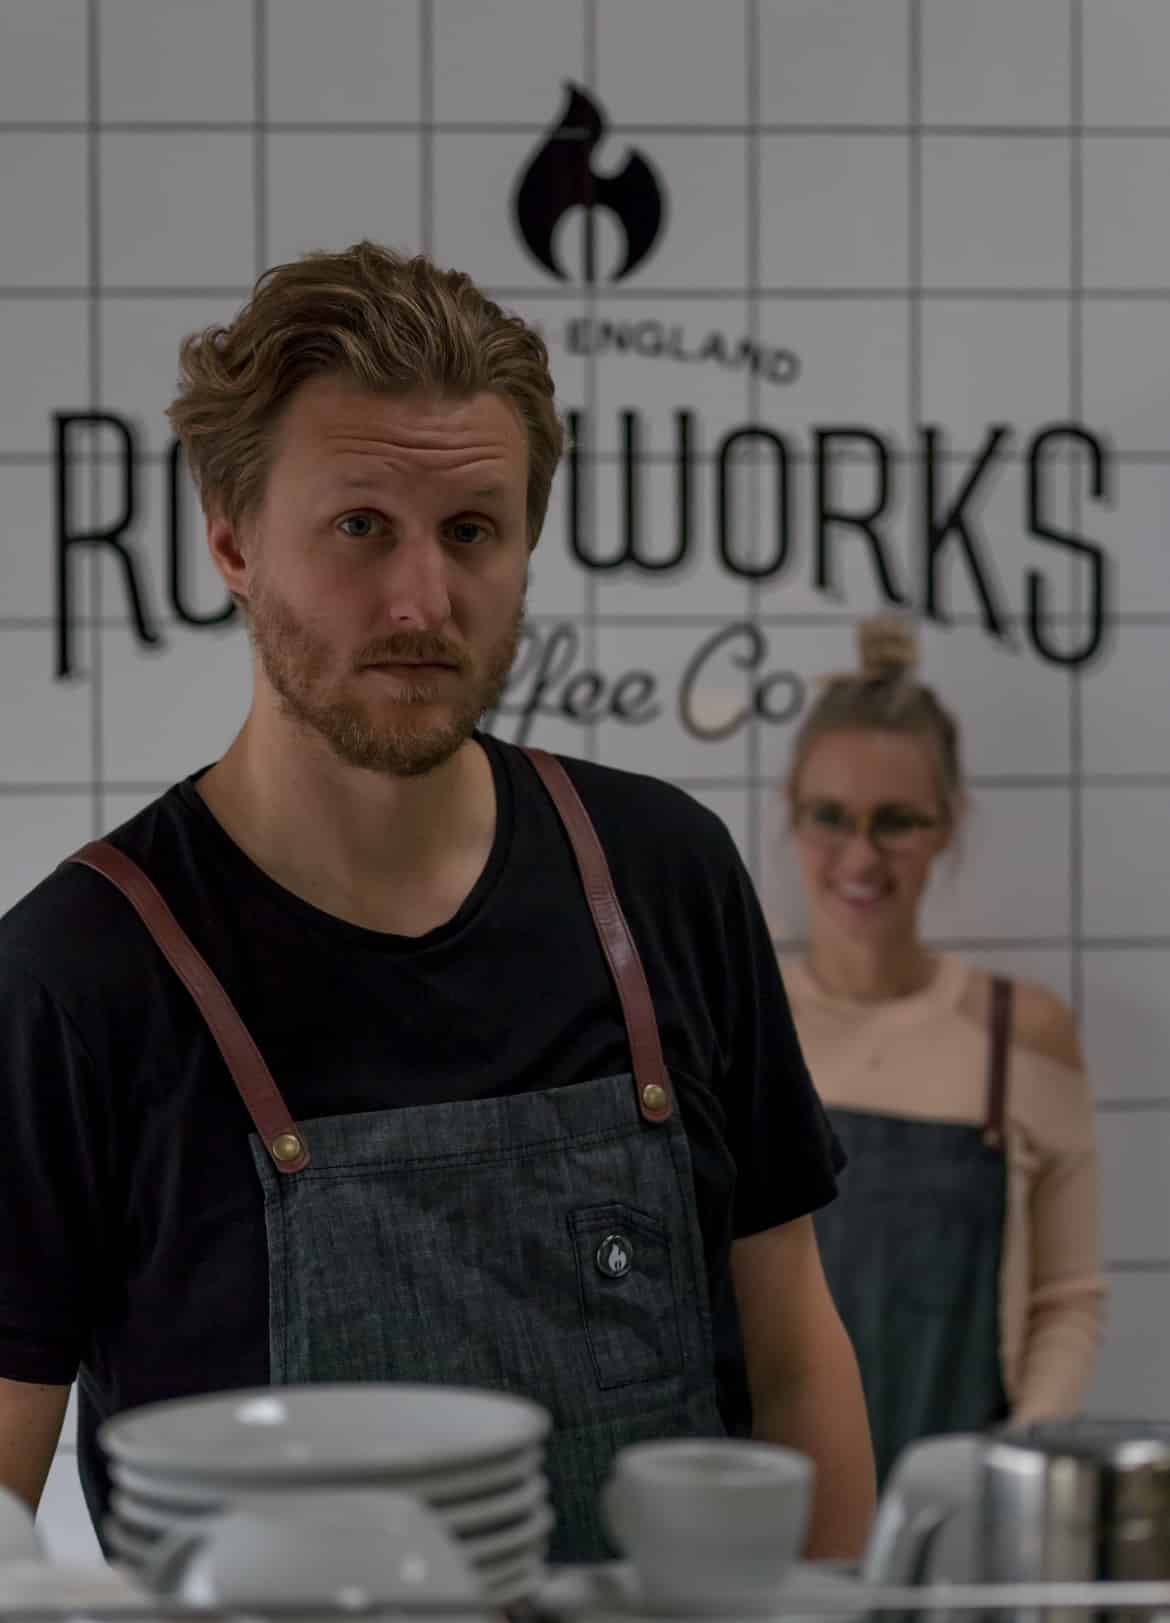 Interview with Roastworks Coffee – Building A Brand